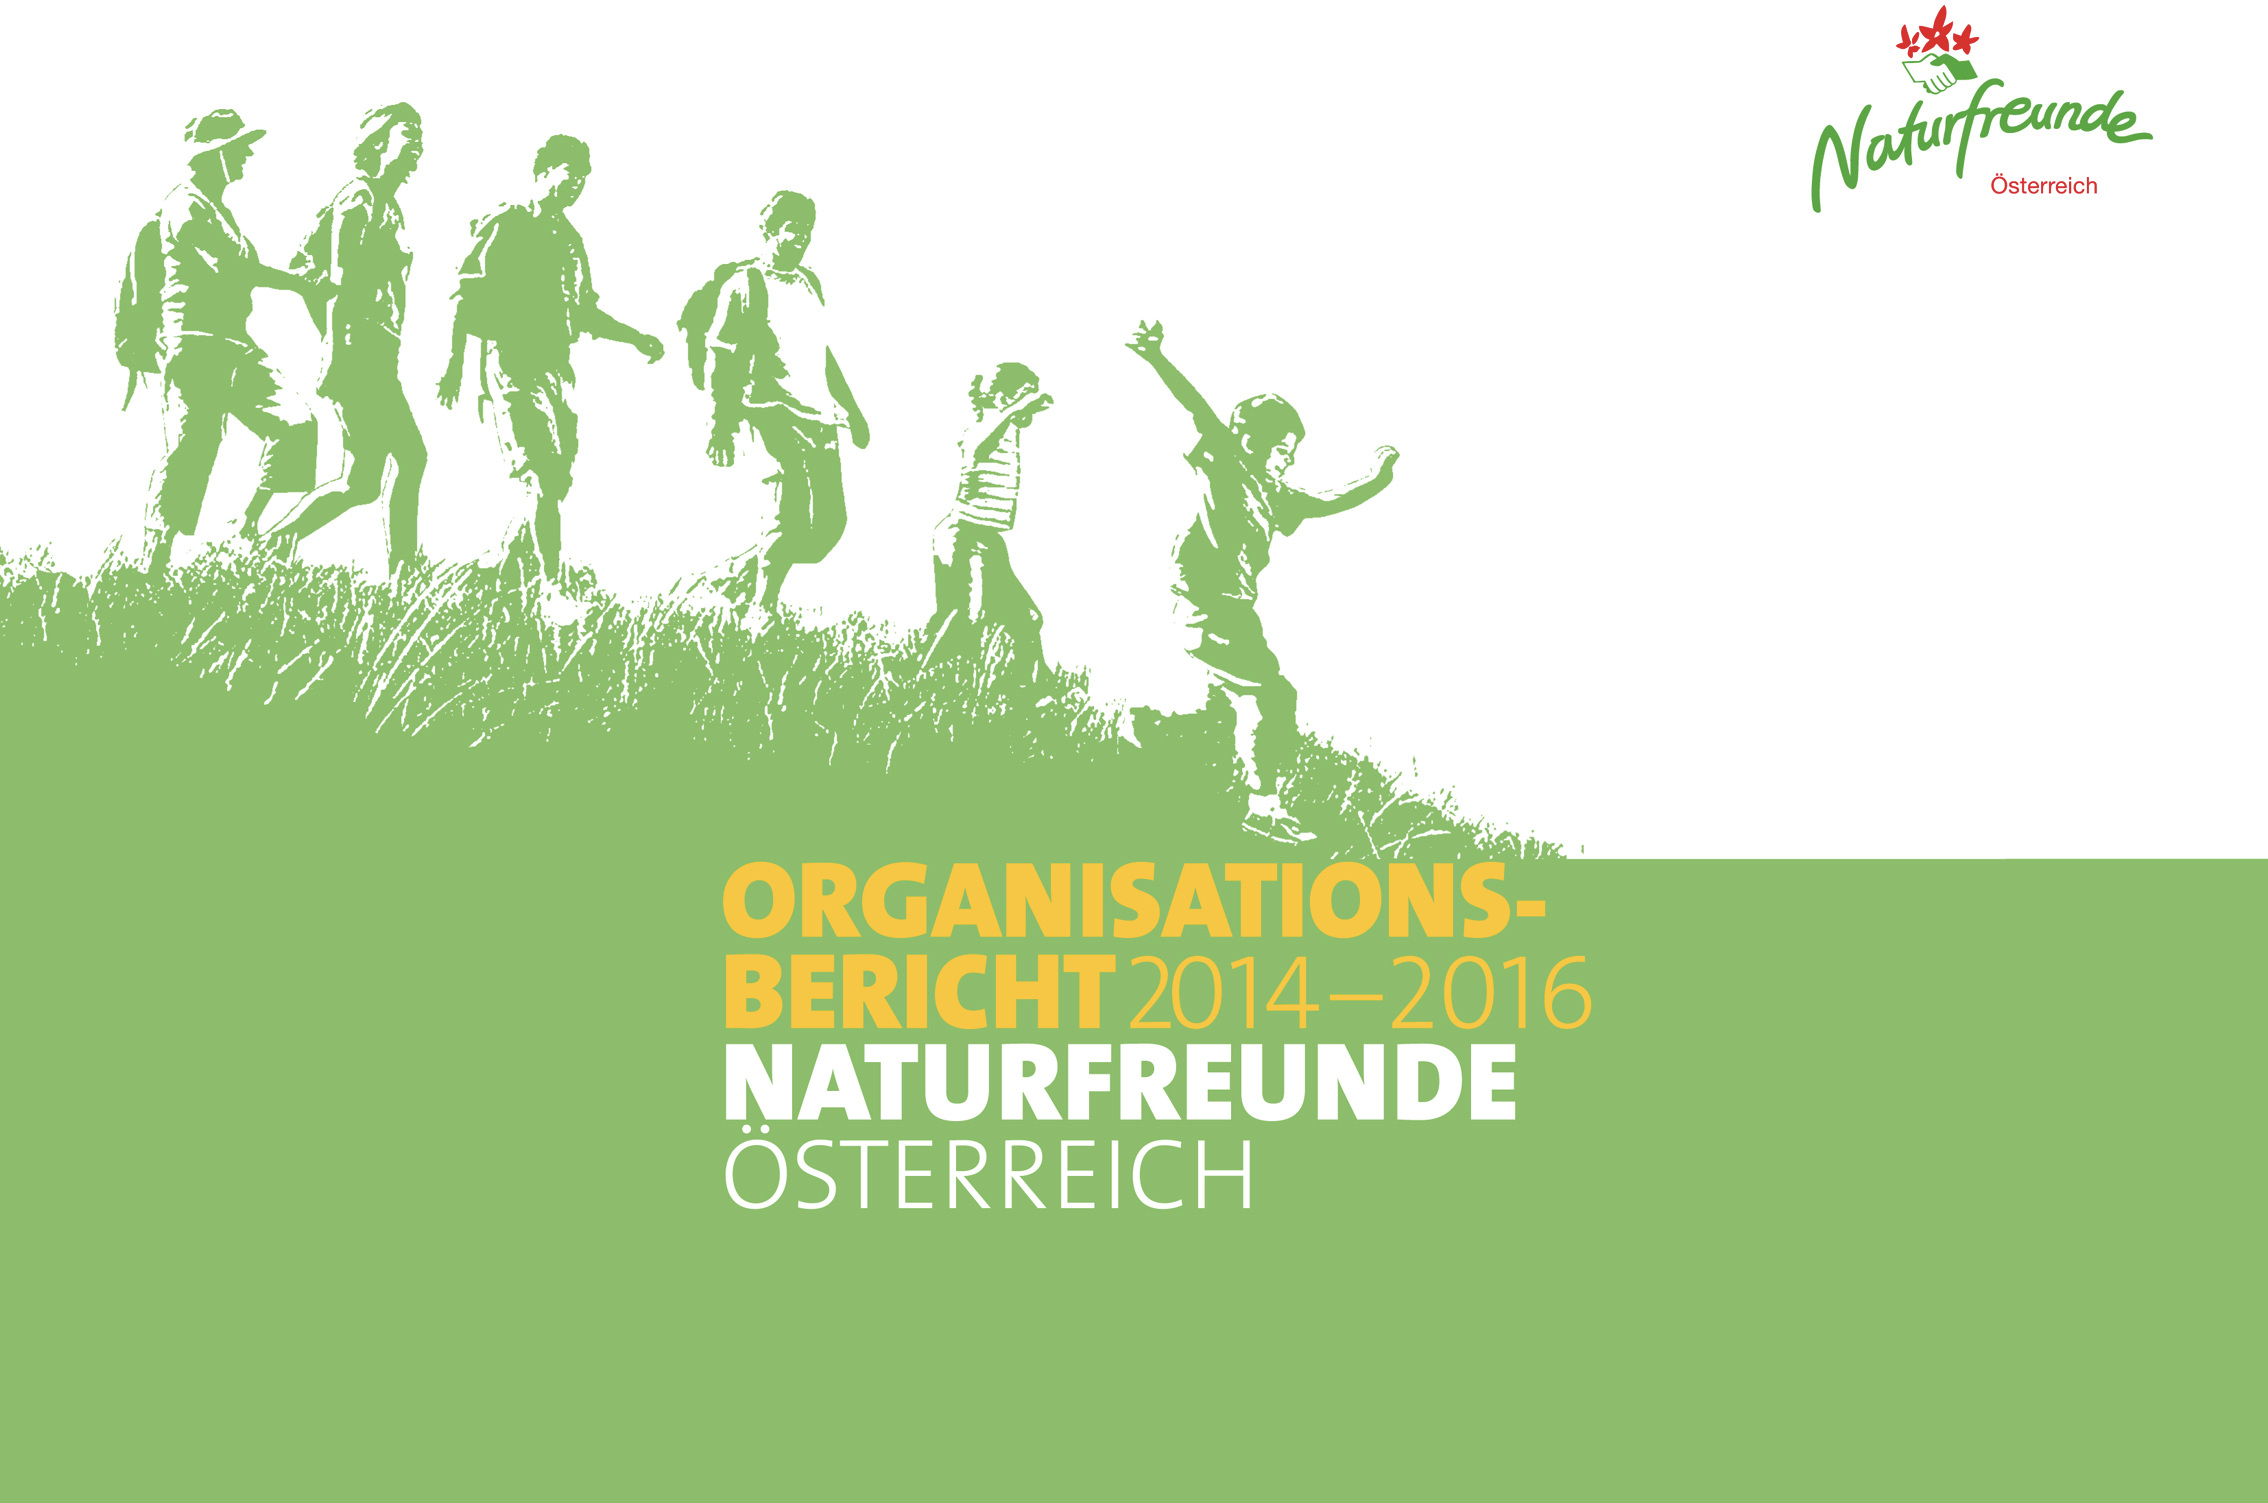 Three-Years-Report of Naturfreunde, Austrian Leisure Organisation